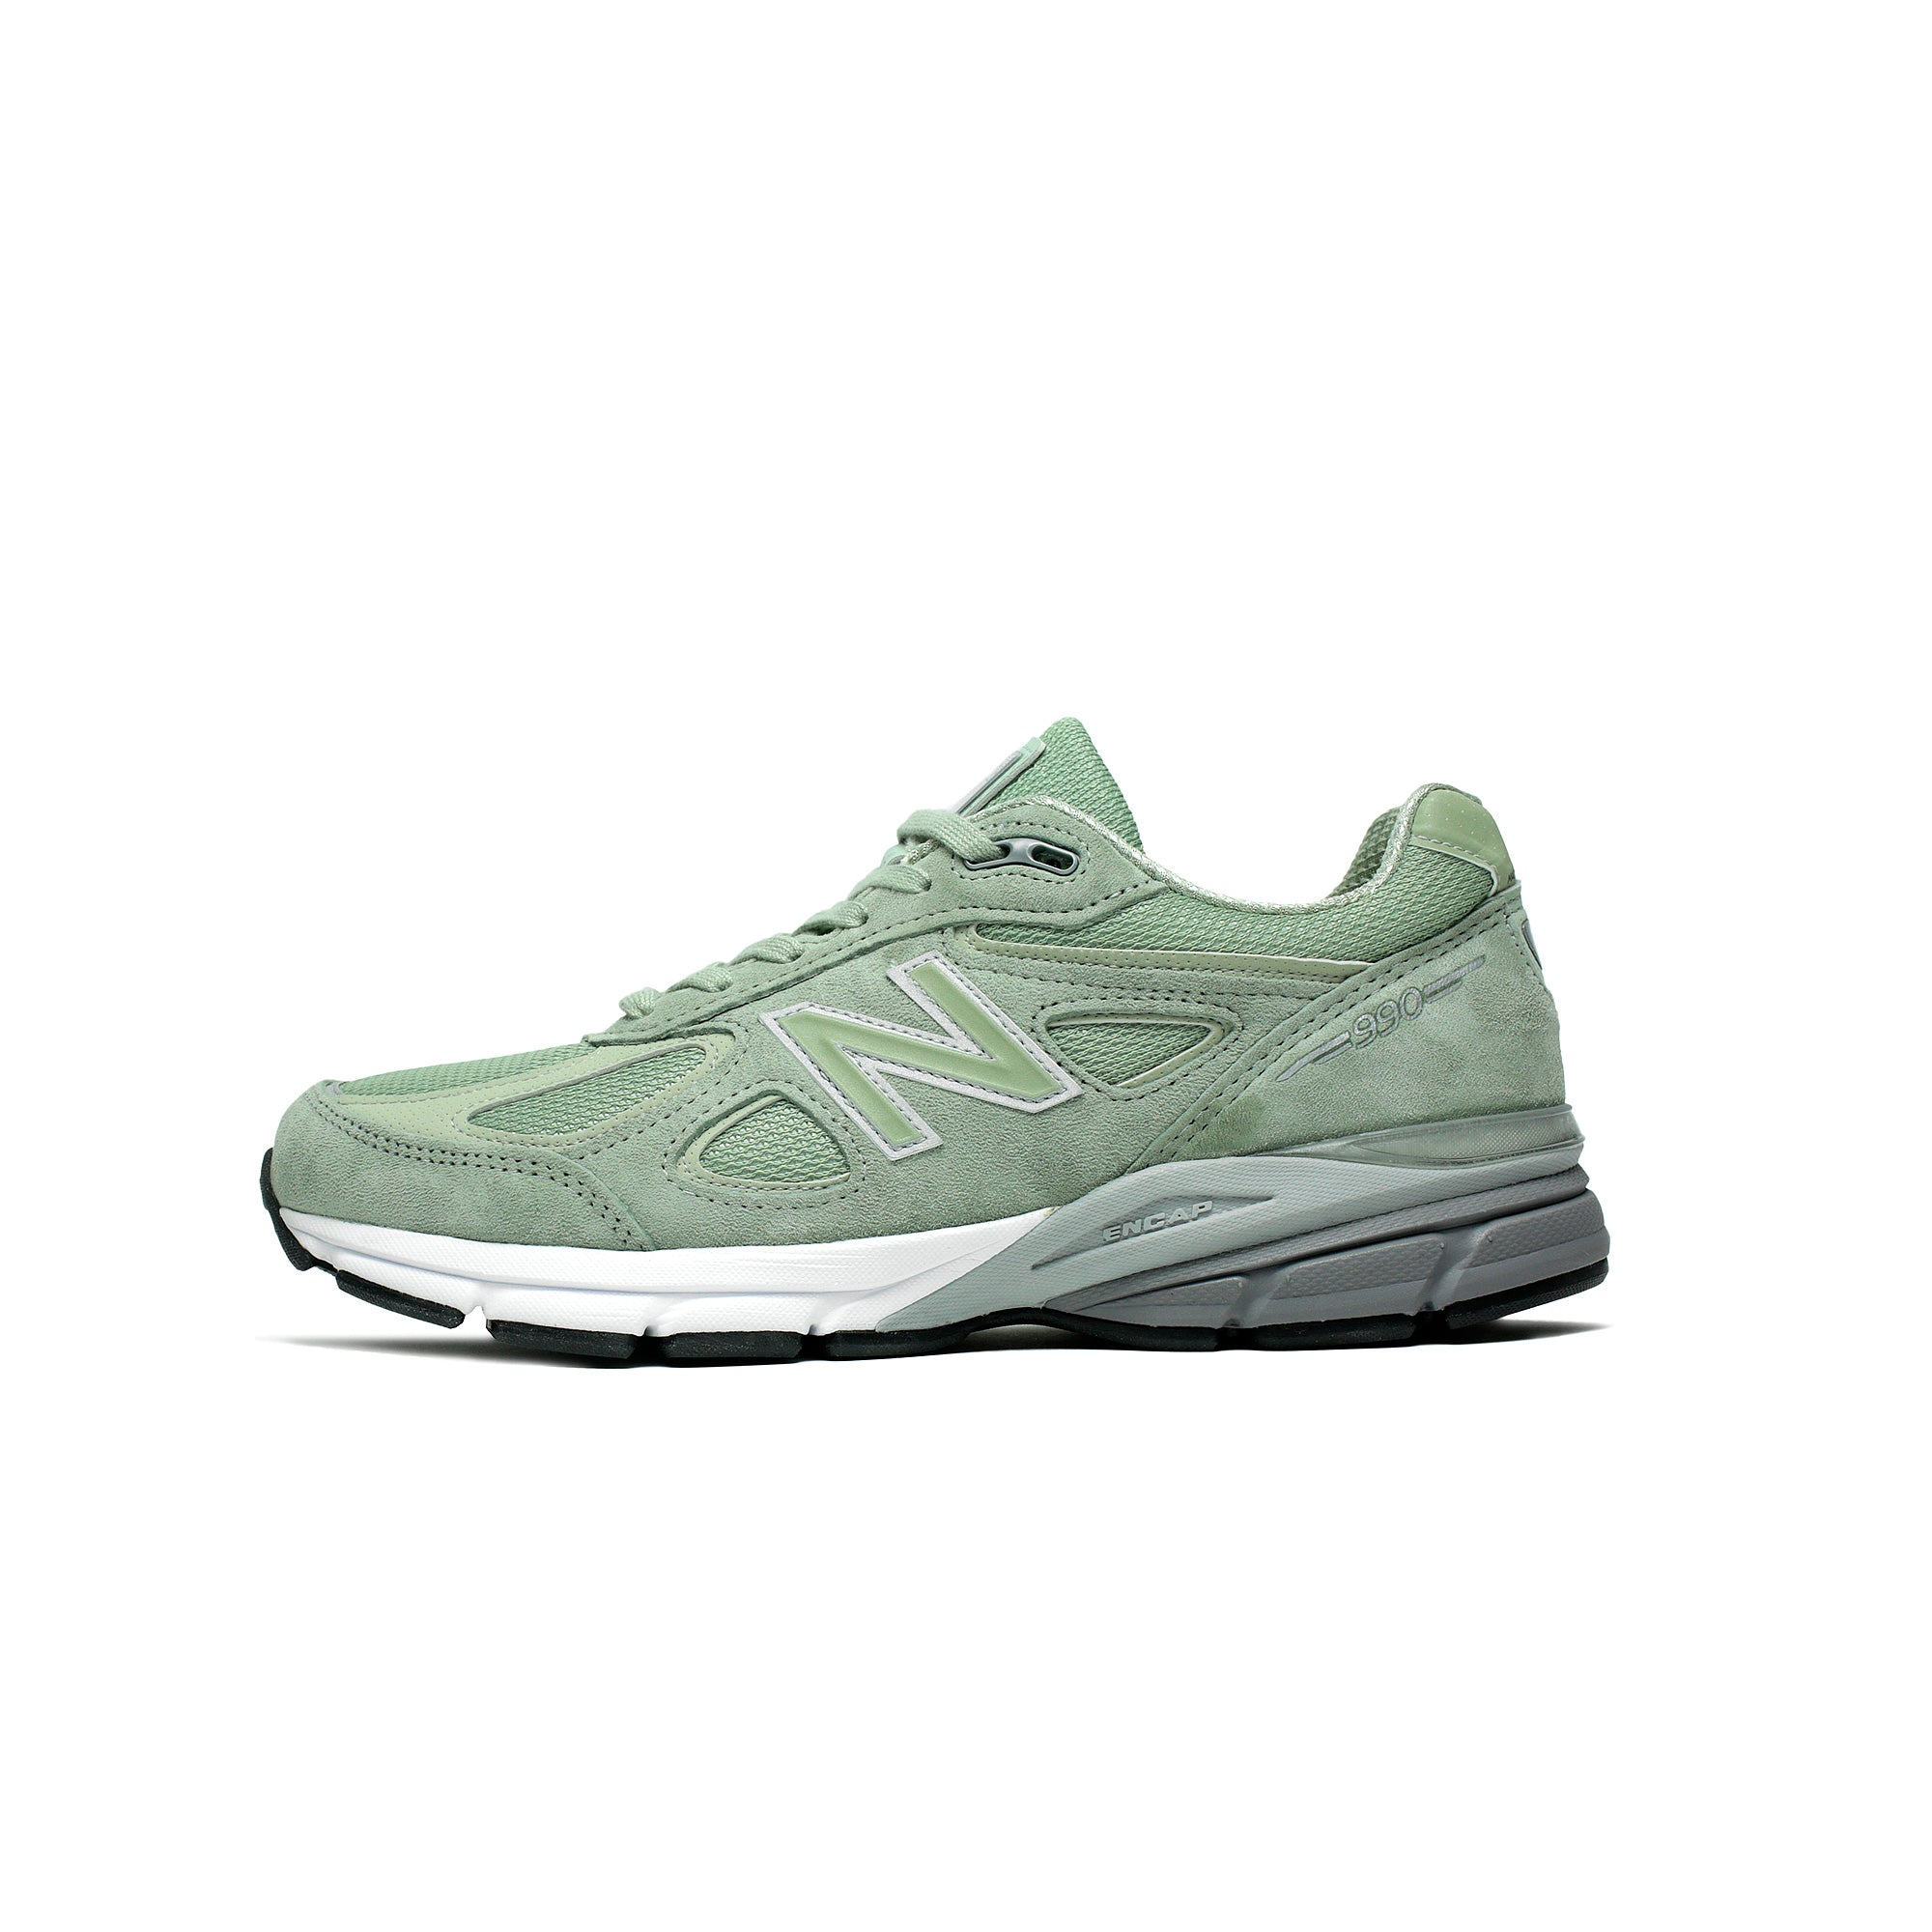 2115d5f870c97 New Balance 990 Made in USA  M990SM4